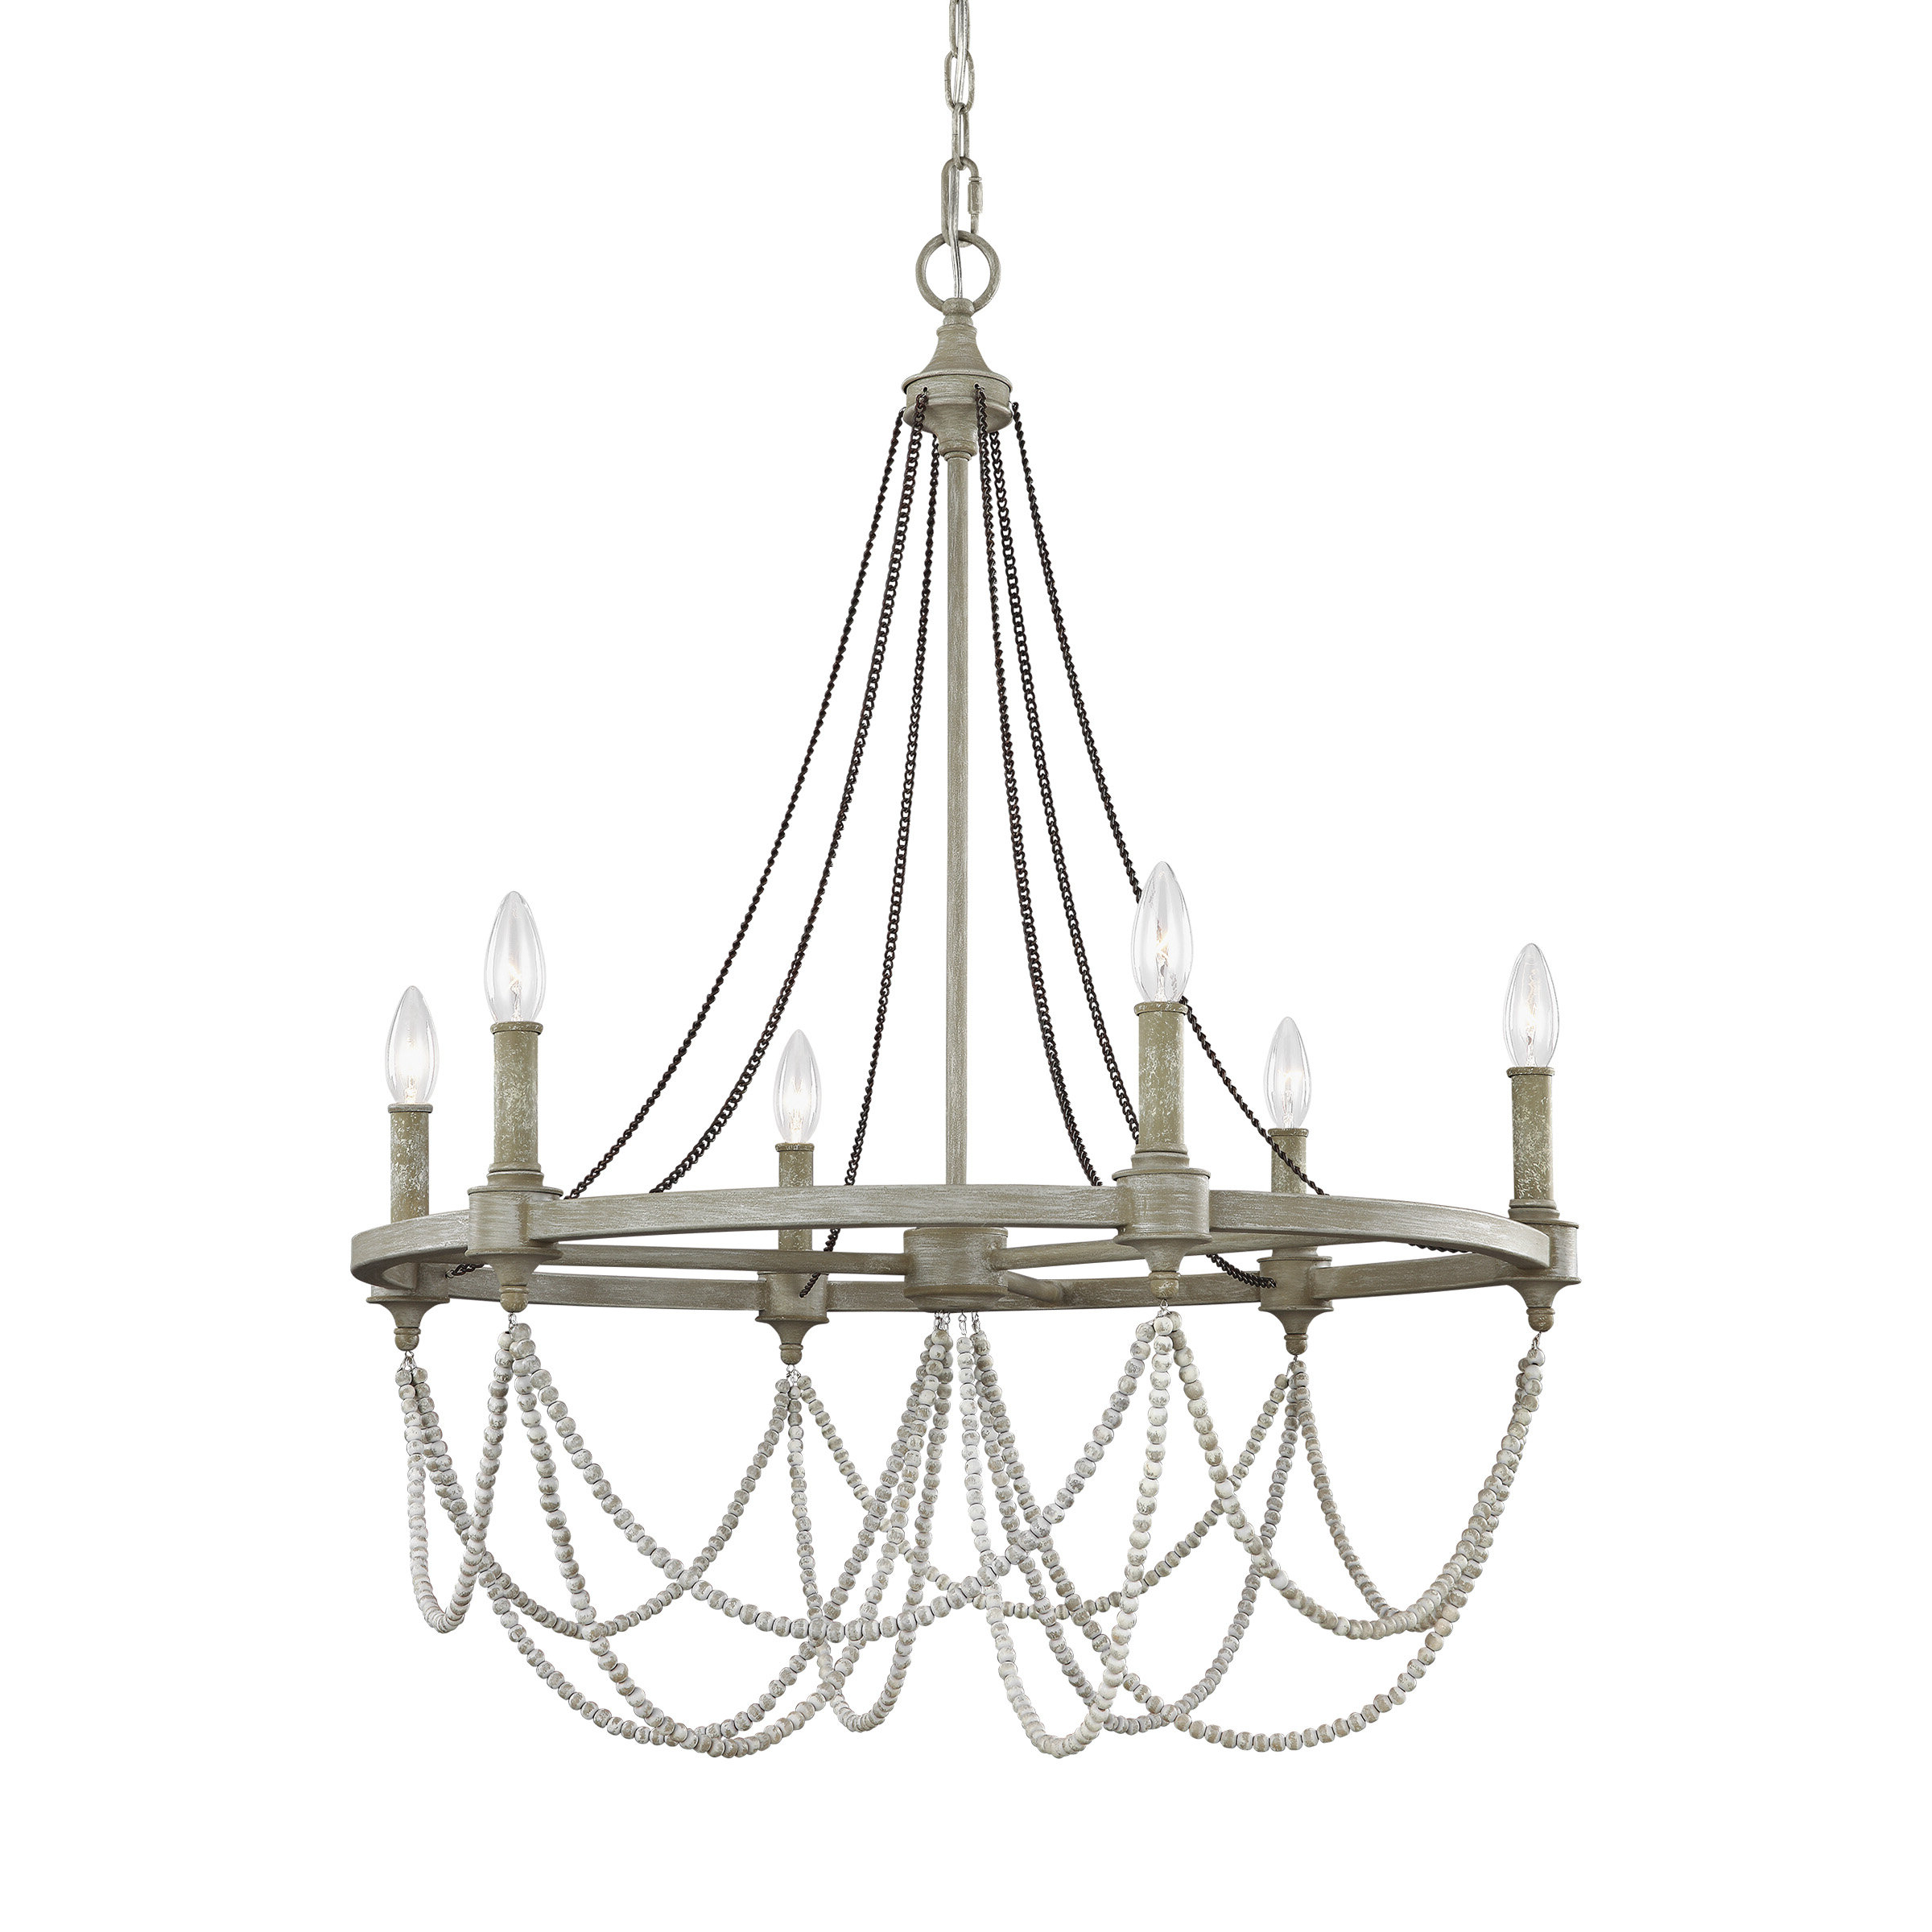 Fitzgibbon 6-Light Candle Style Chandelier with regard to Most Popular Watford 9-Light Candle Style Chandeliers